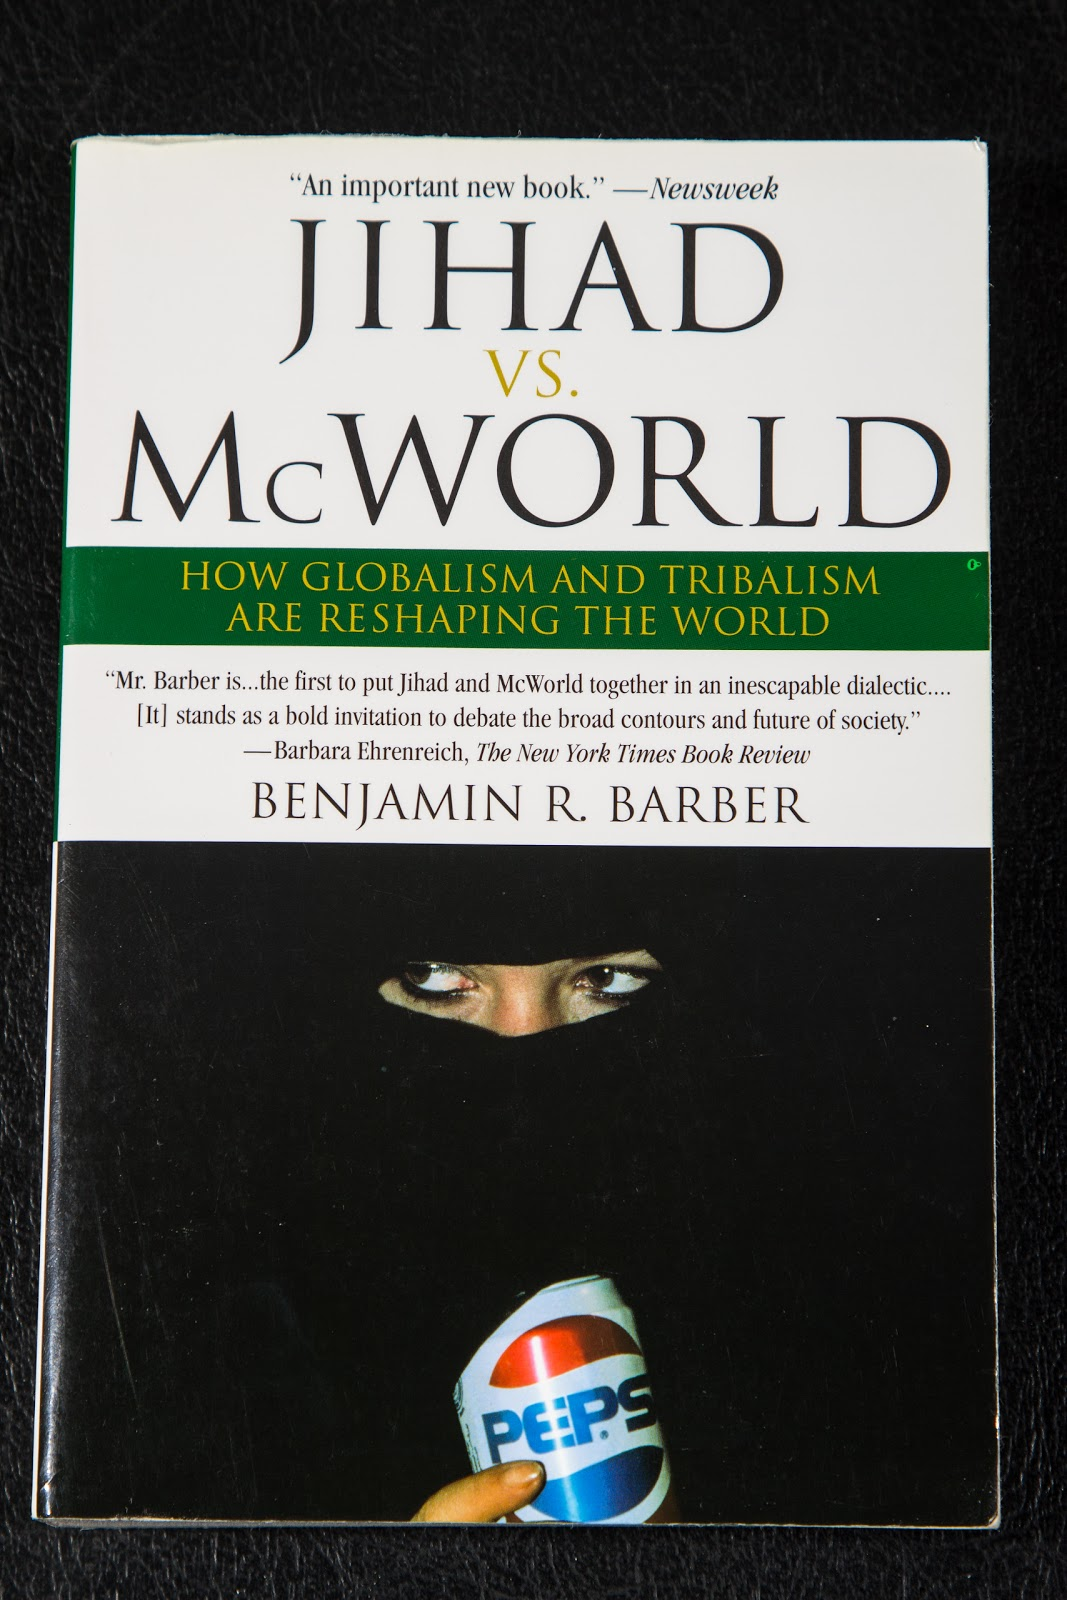 jihad vs mcworld thesis One of these is jihad vs mcworld, an essay published by the atlantic in 1992 and written by benjamin barber for those unfamiliar with it, barber's thesis is that democracy and the westphalian nation-state are being pulled apart by the equal and opposite forces of globalization (mcworld) and sectarianism (jihad.